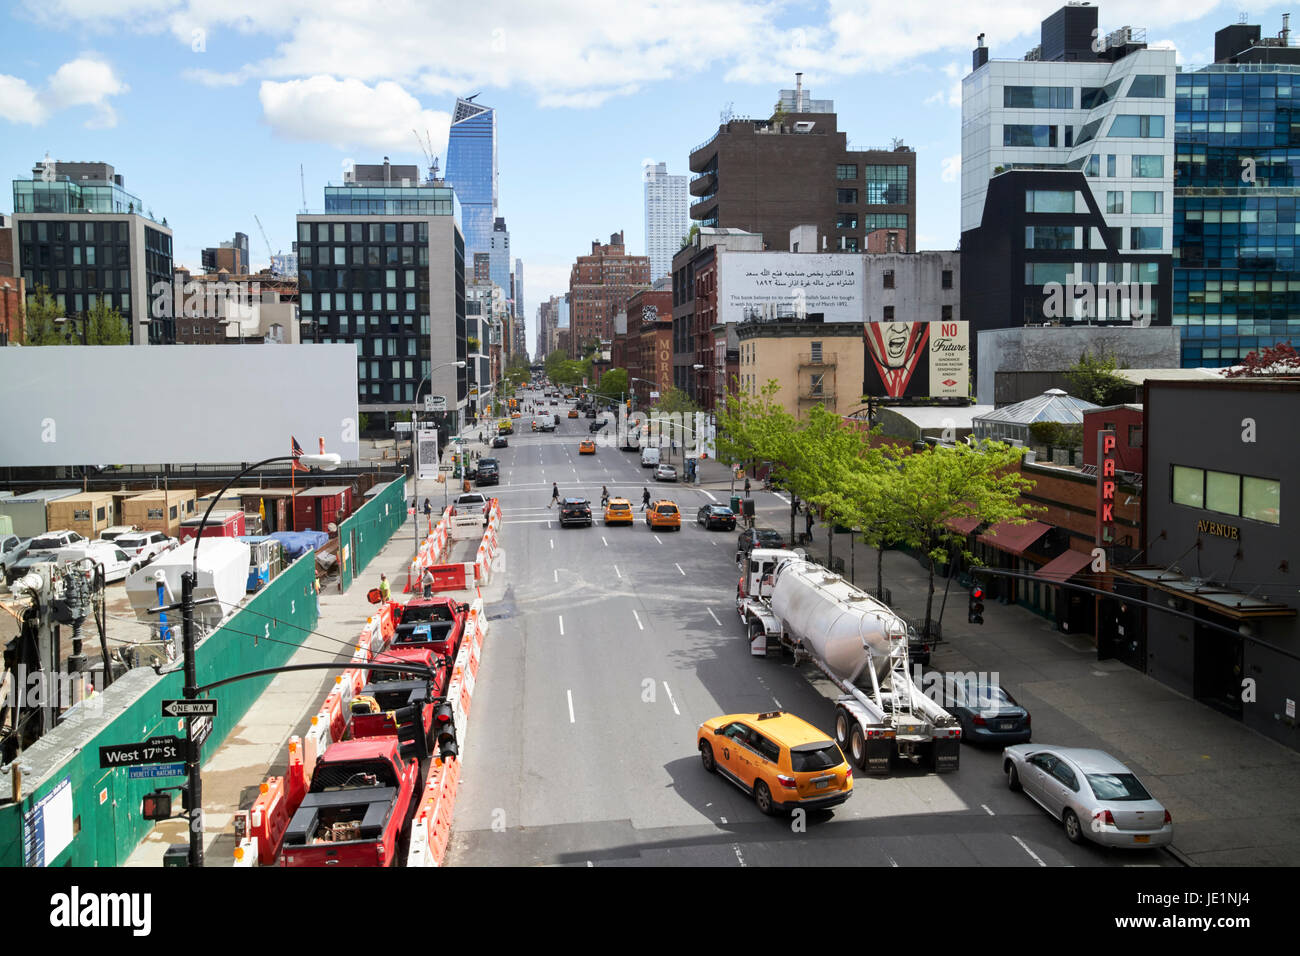 looking up tenth avenue through chelsea New York City USA - Stock Image